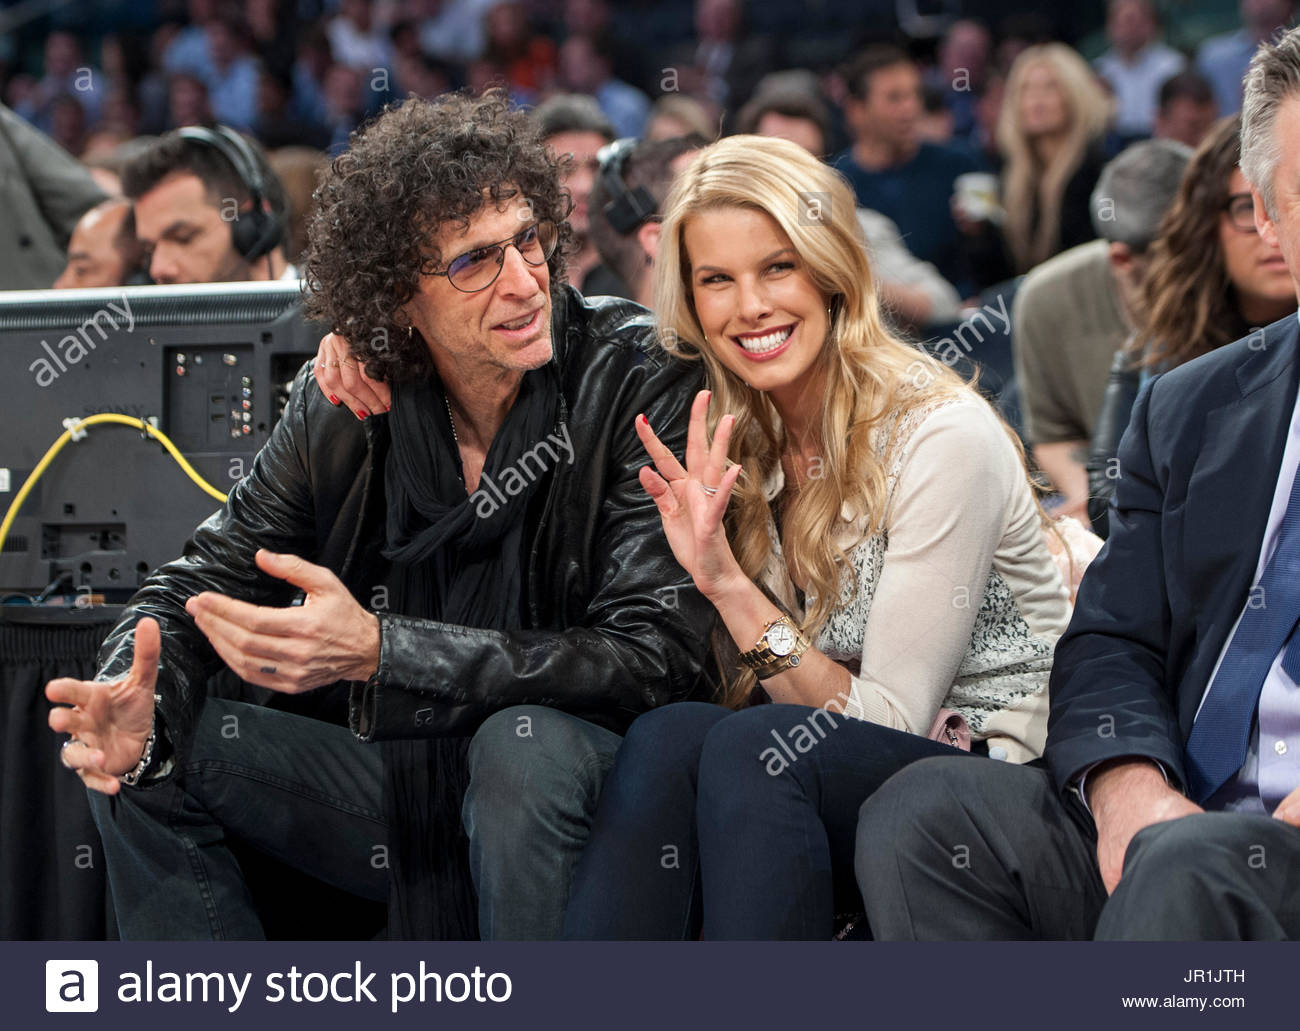 Howard Stern Makes His Debut on Americas Got Talent Howard Stern Makes His Debut on Americas Got Talent new photo